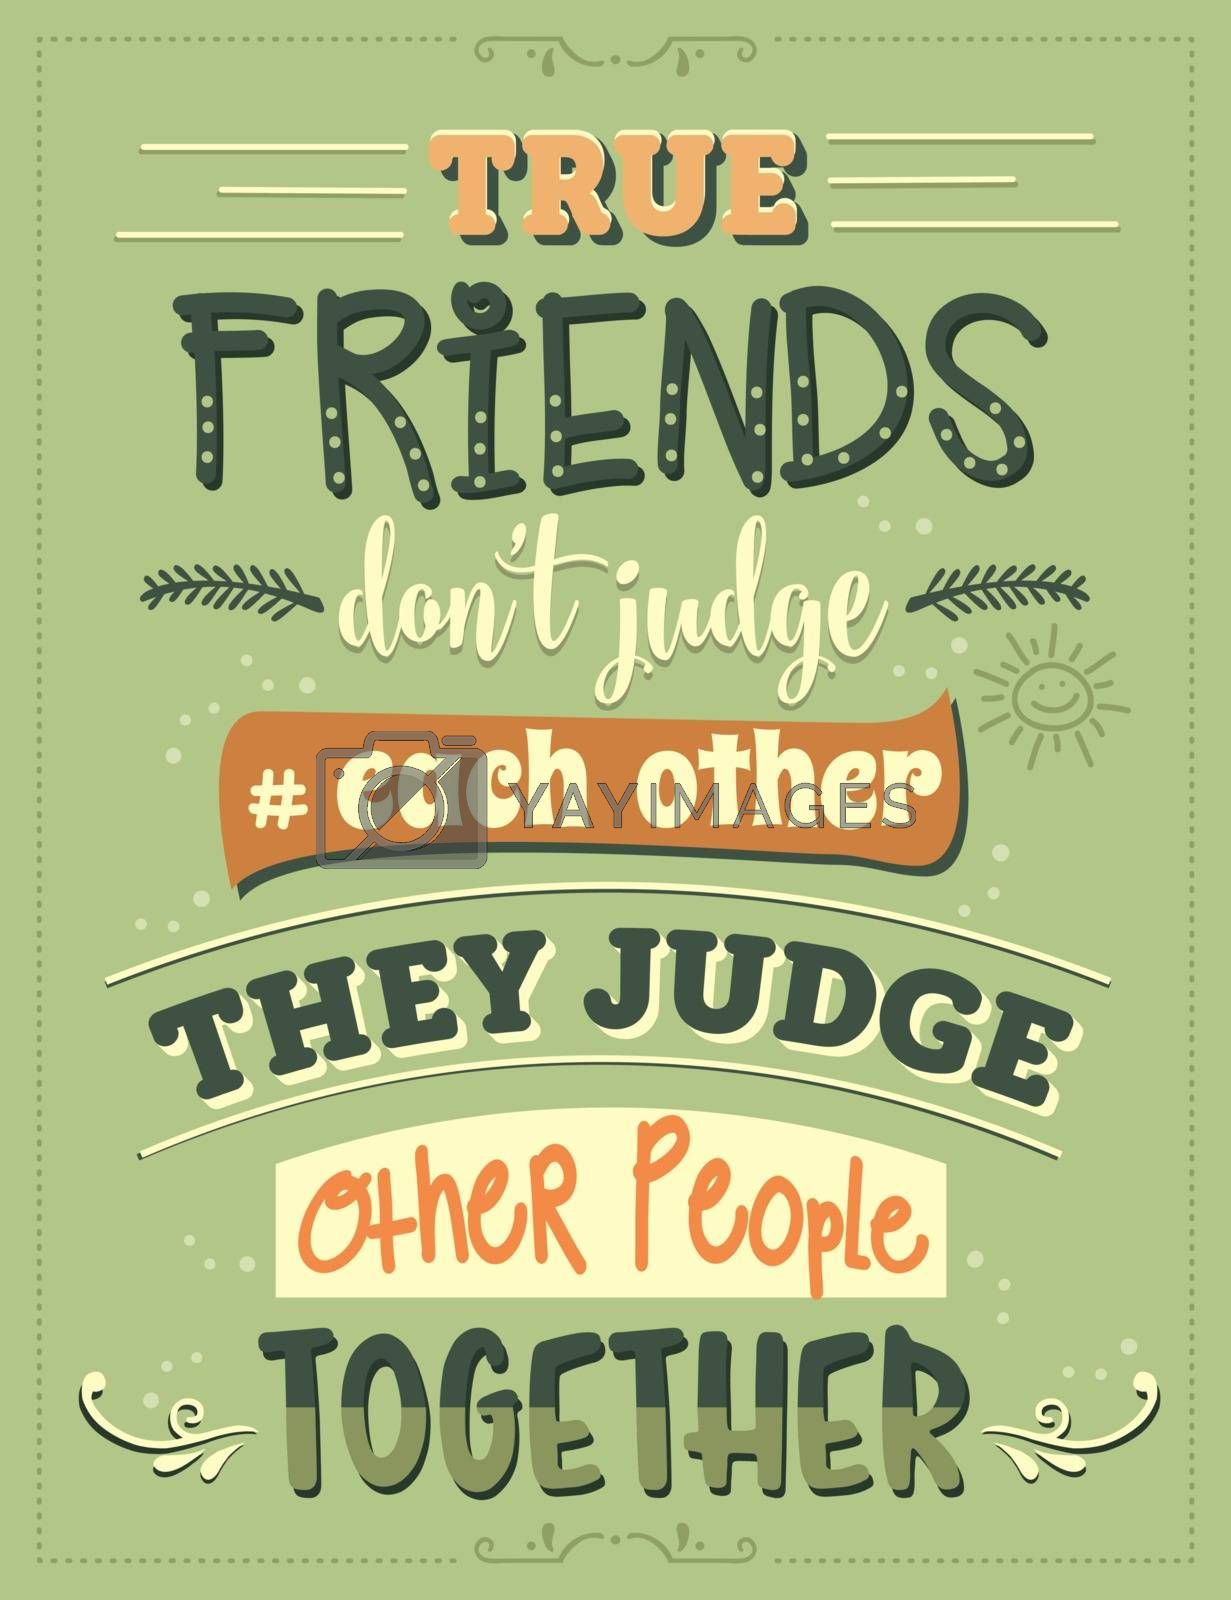 True friends don't judge each other, they judge other people together. Funny inspirational quote. Hand drawn illustration with hand-lettering and decoration elements. Drawing for prints on t-shirts and bags, stationary or poster.